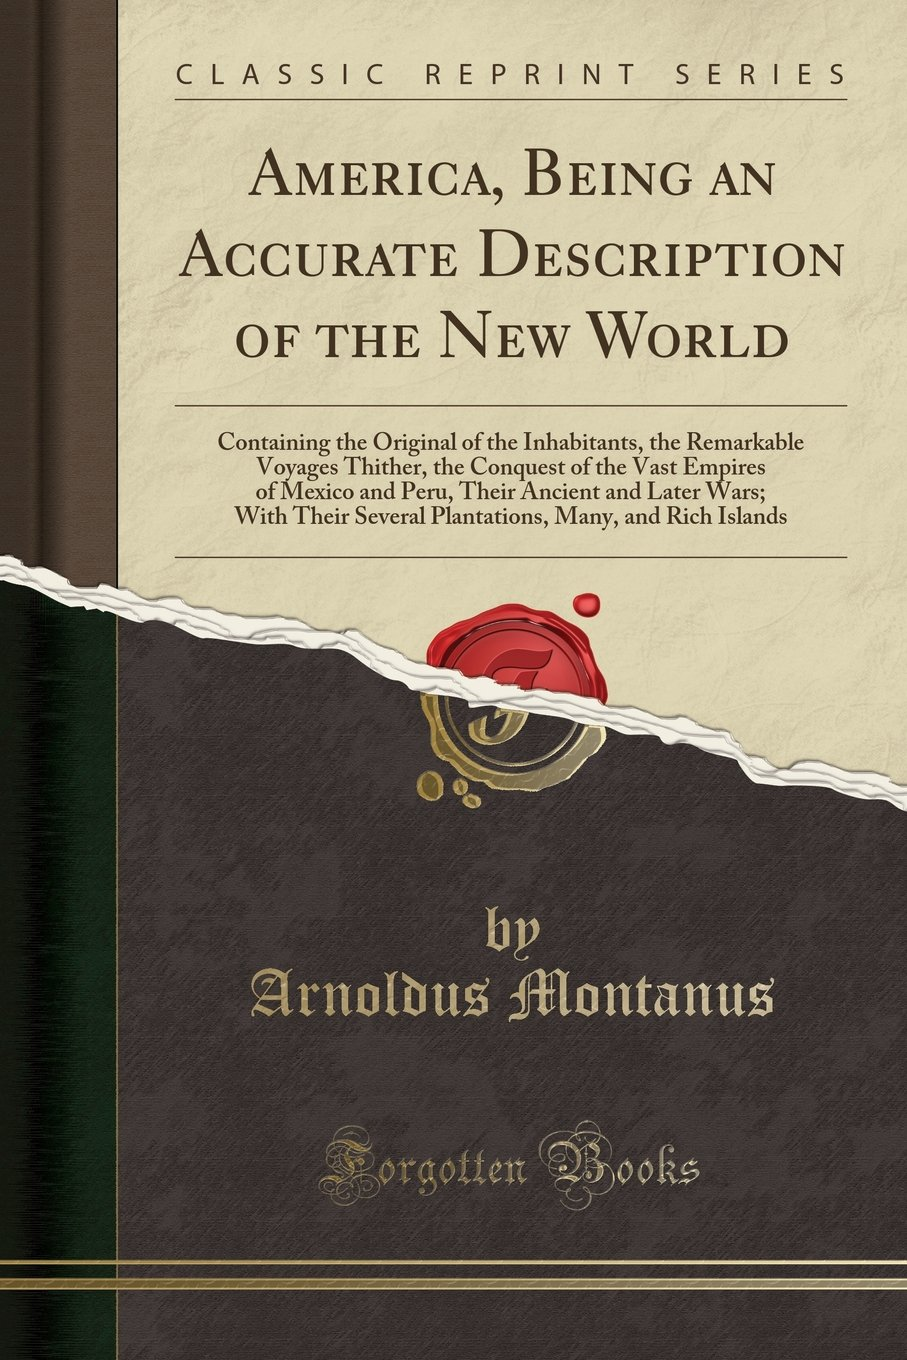 Download America, Being an Accurate Description of the New World: Containing the Original of the Inhabitants, the Remarkable Voyages Thither, the Conquest of ... Wars; With Their Several Plantations, Many, a ebook